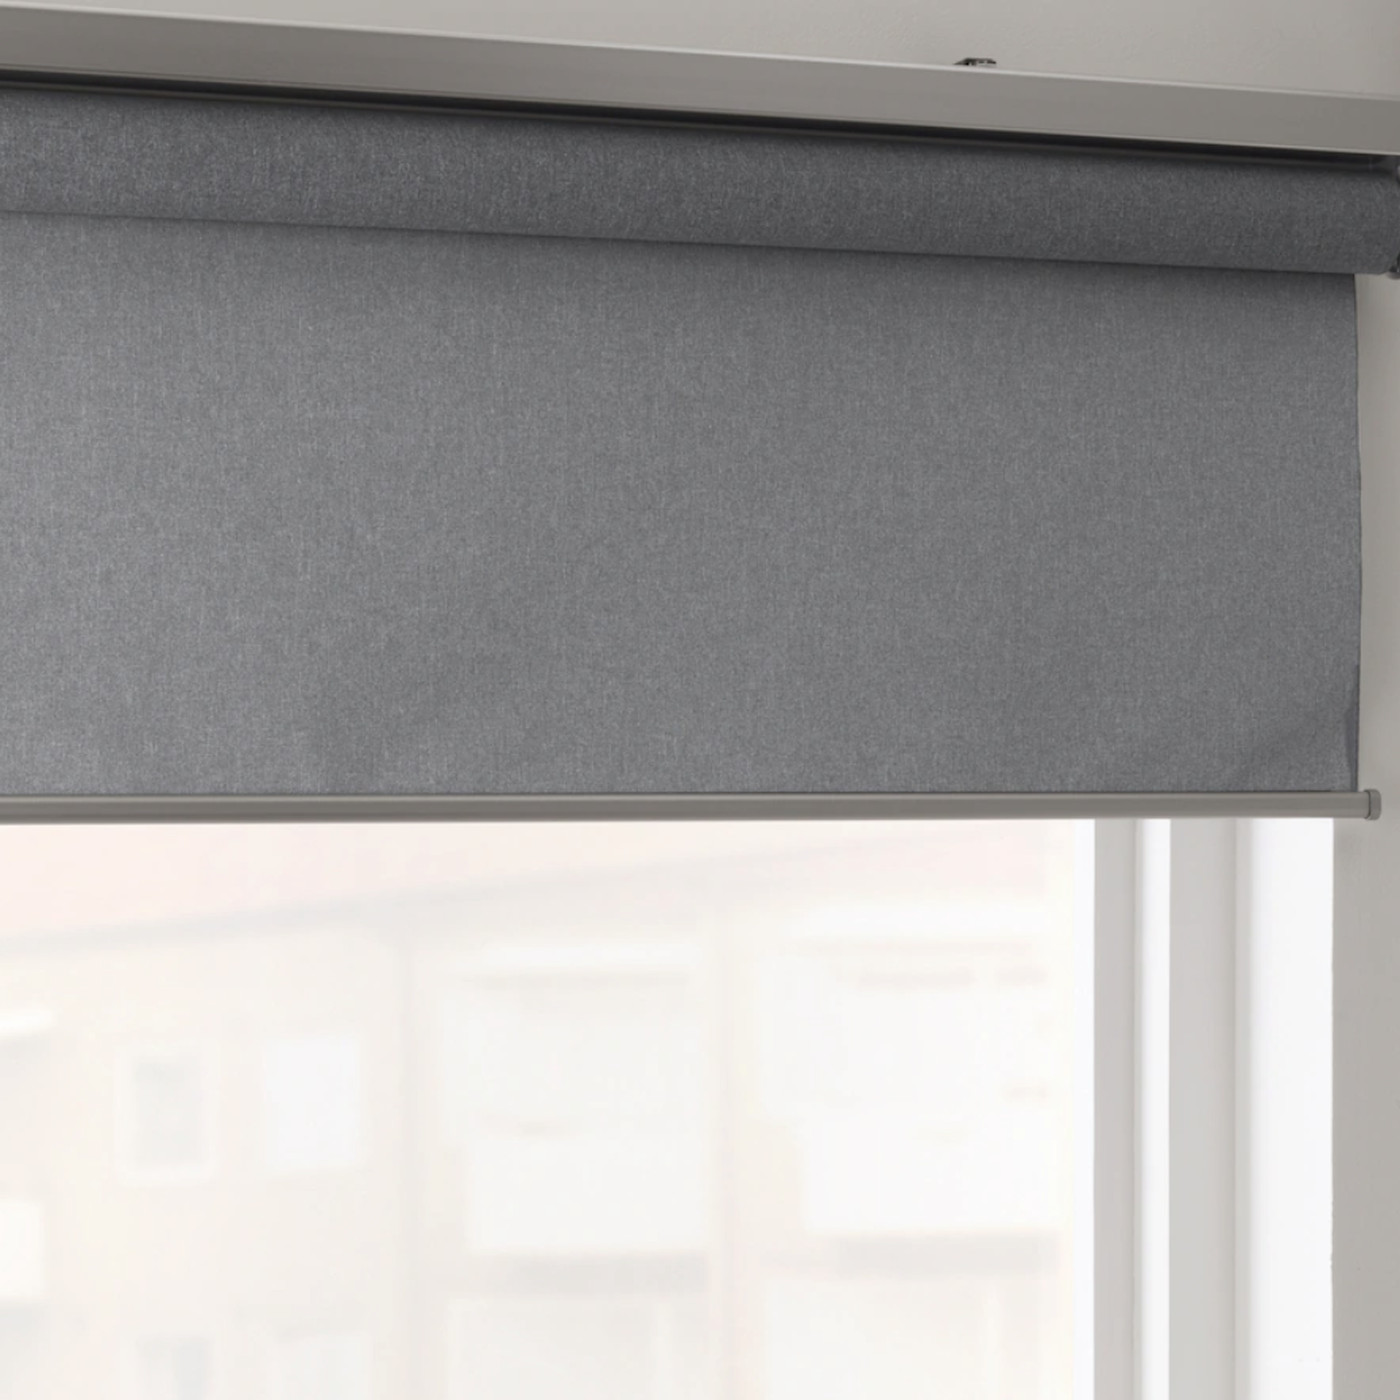 Ikeas Smart Blinds Get A New October 1st Release Date In